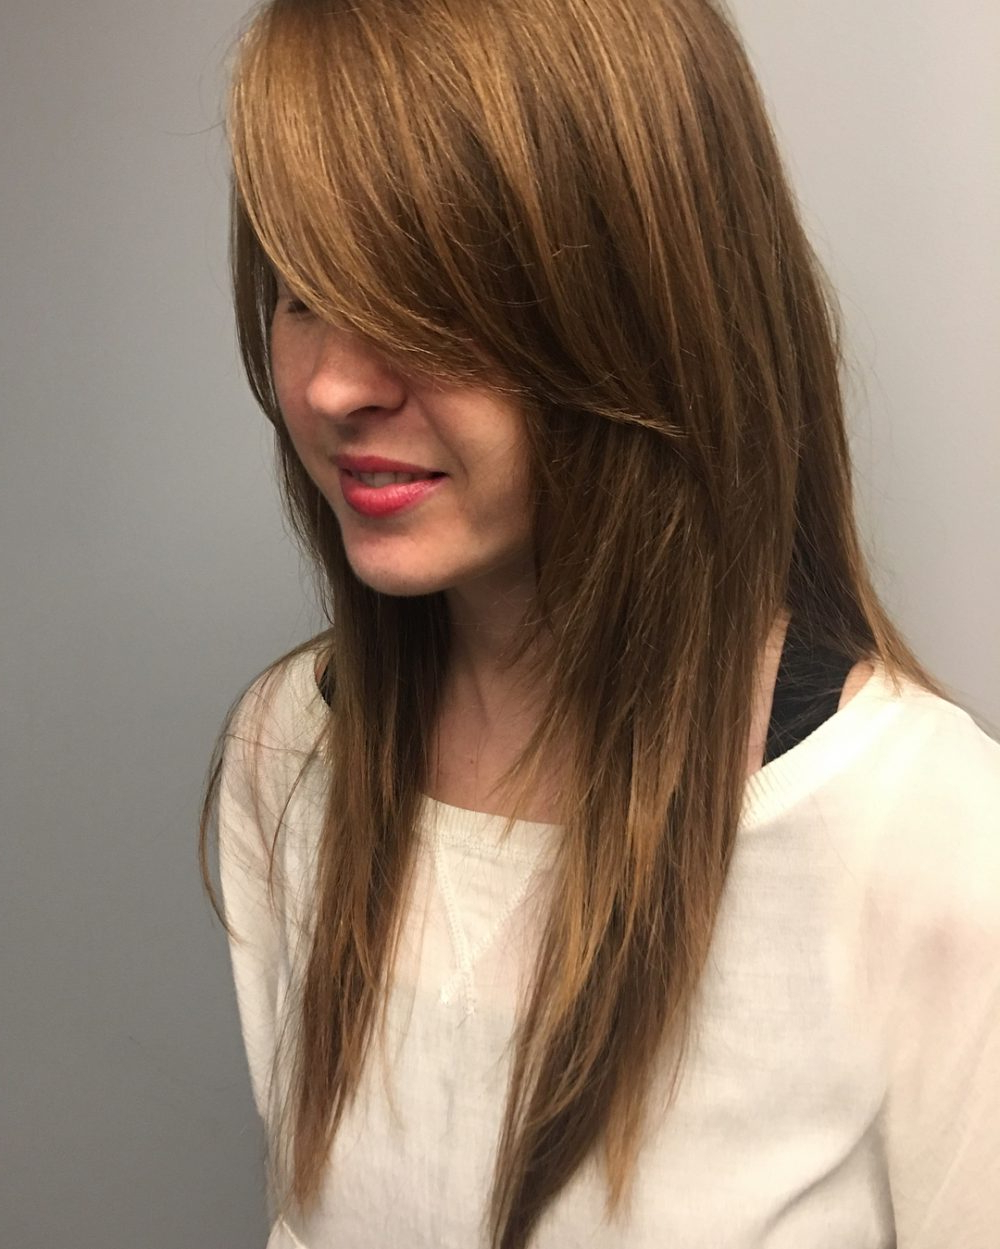 Fashionable Long Shag Haircuts With Extreme Layers For Long Shag Haircuts: 36 Examples For (View 7 of 20)